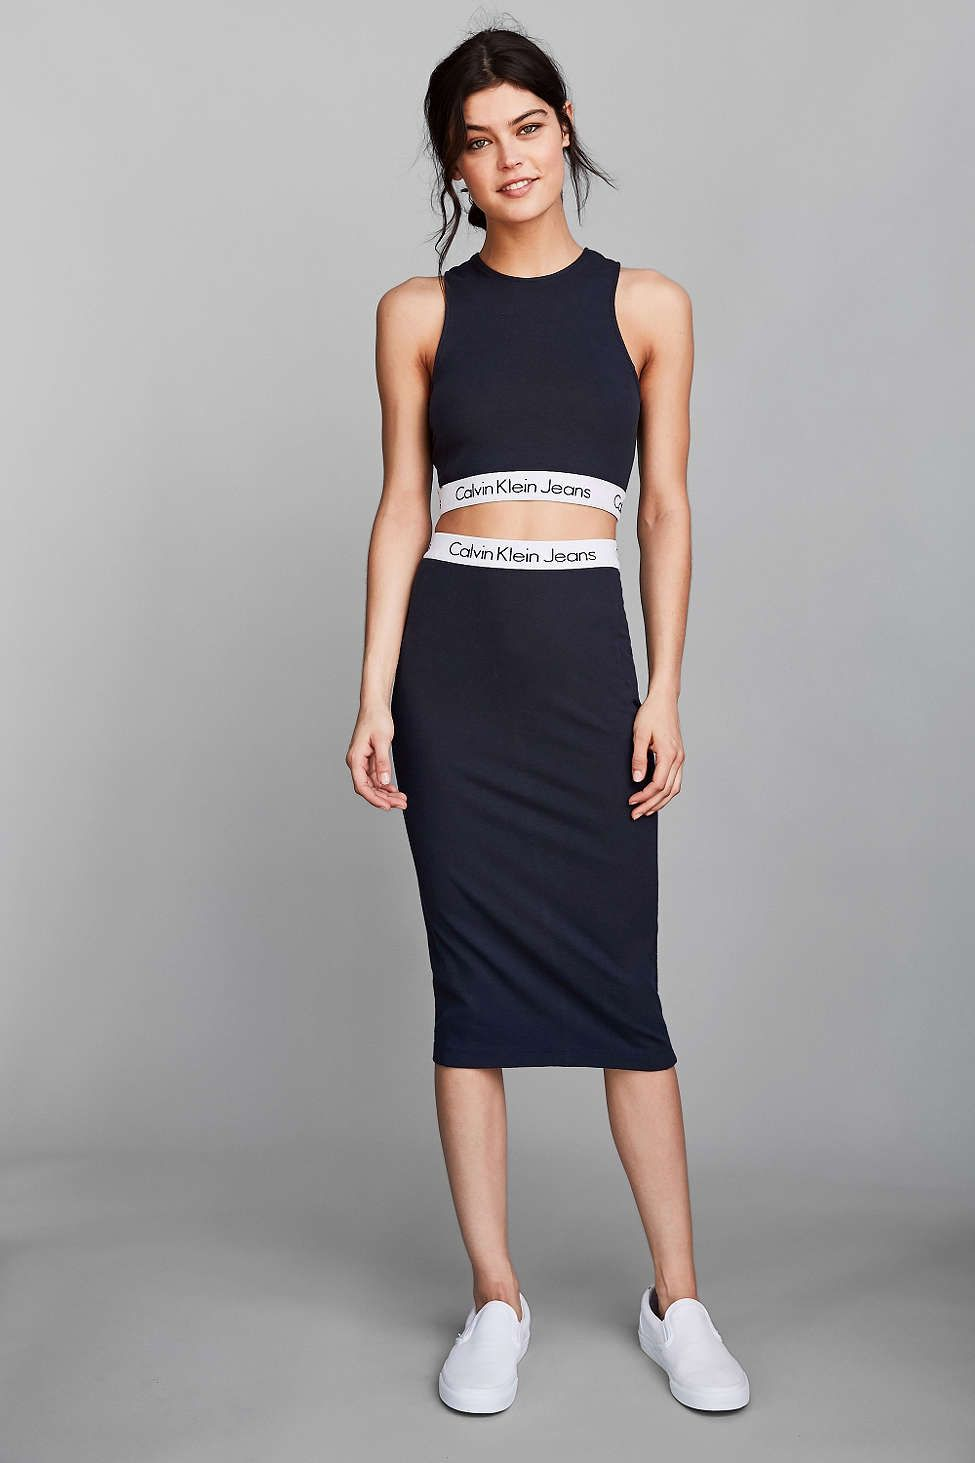 Calvin Klein For UO Tube Skirt   fashion   Pinterest   Calvin klein ... 1da66bc35c